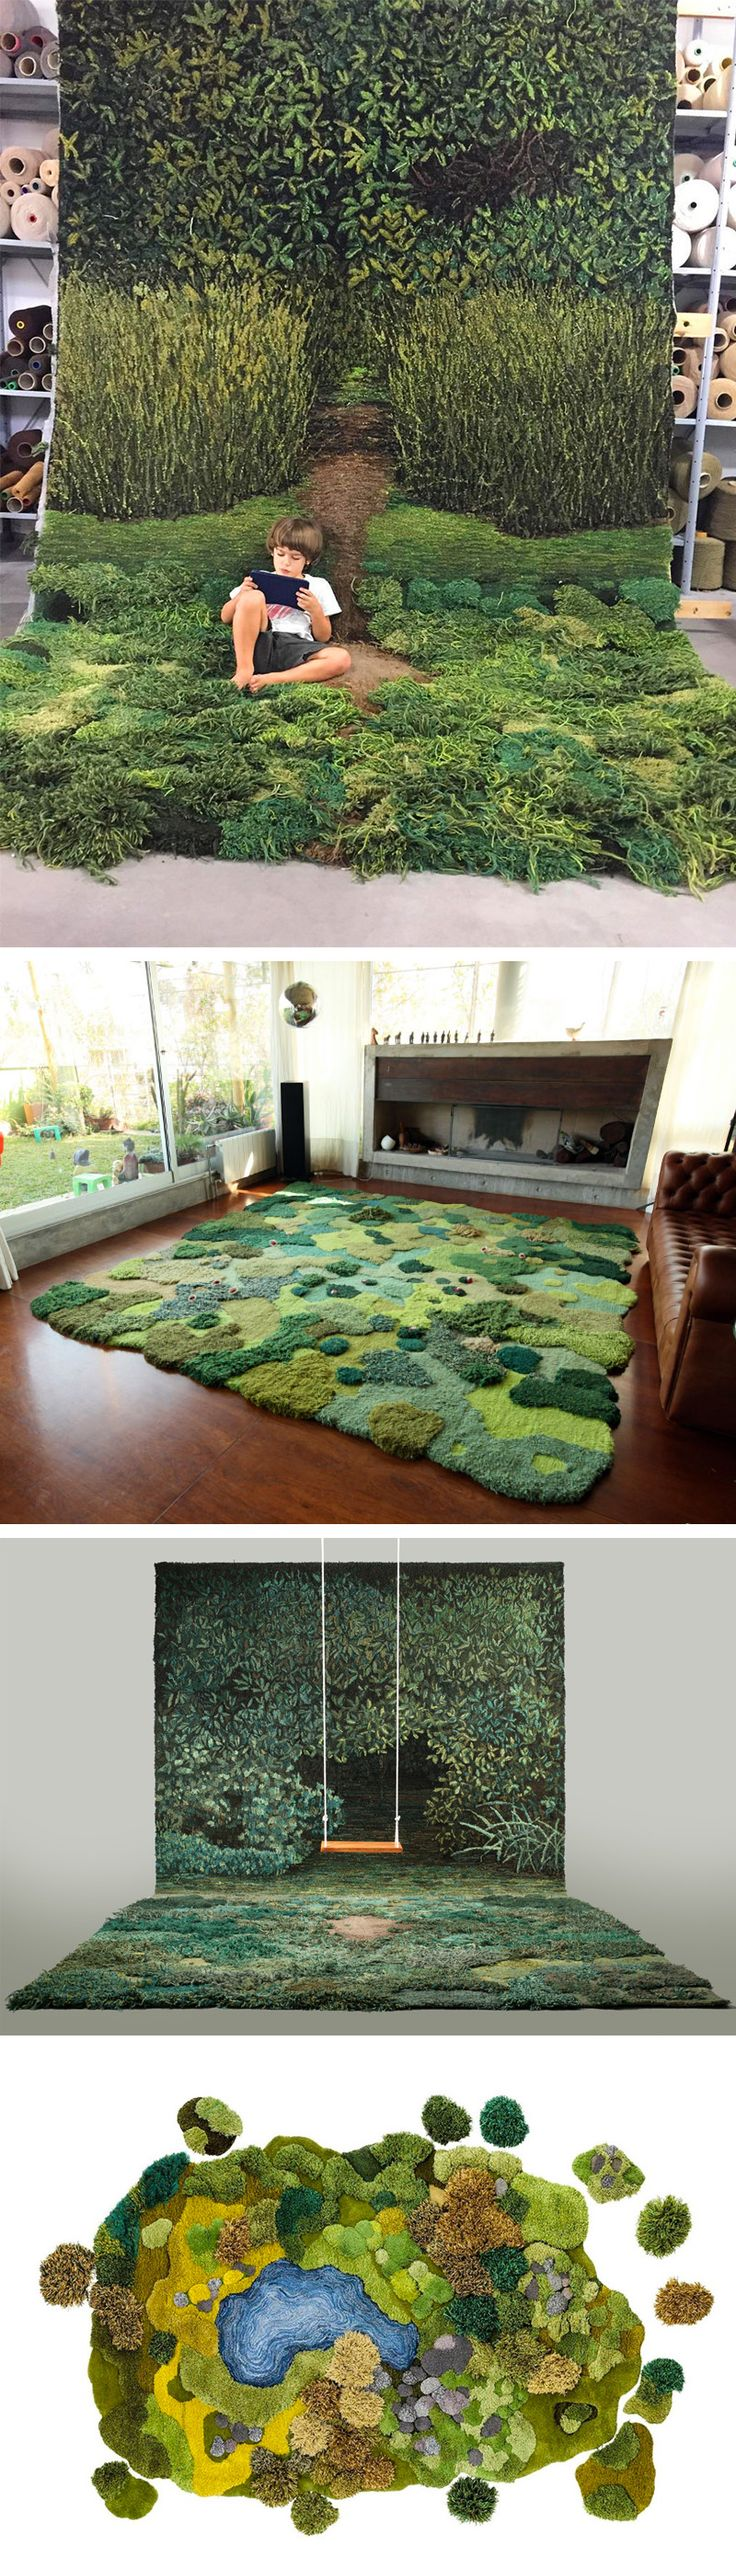 Green bed sheets texture - Oh My Goodness Yeeeeeesssssssssssssssssone Of Kind Wool Rug Artworks By Alexandra Kehayoglou Mimic Rolling Pastures And Mossy Textures